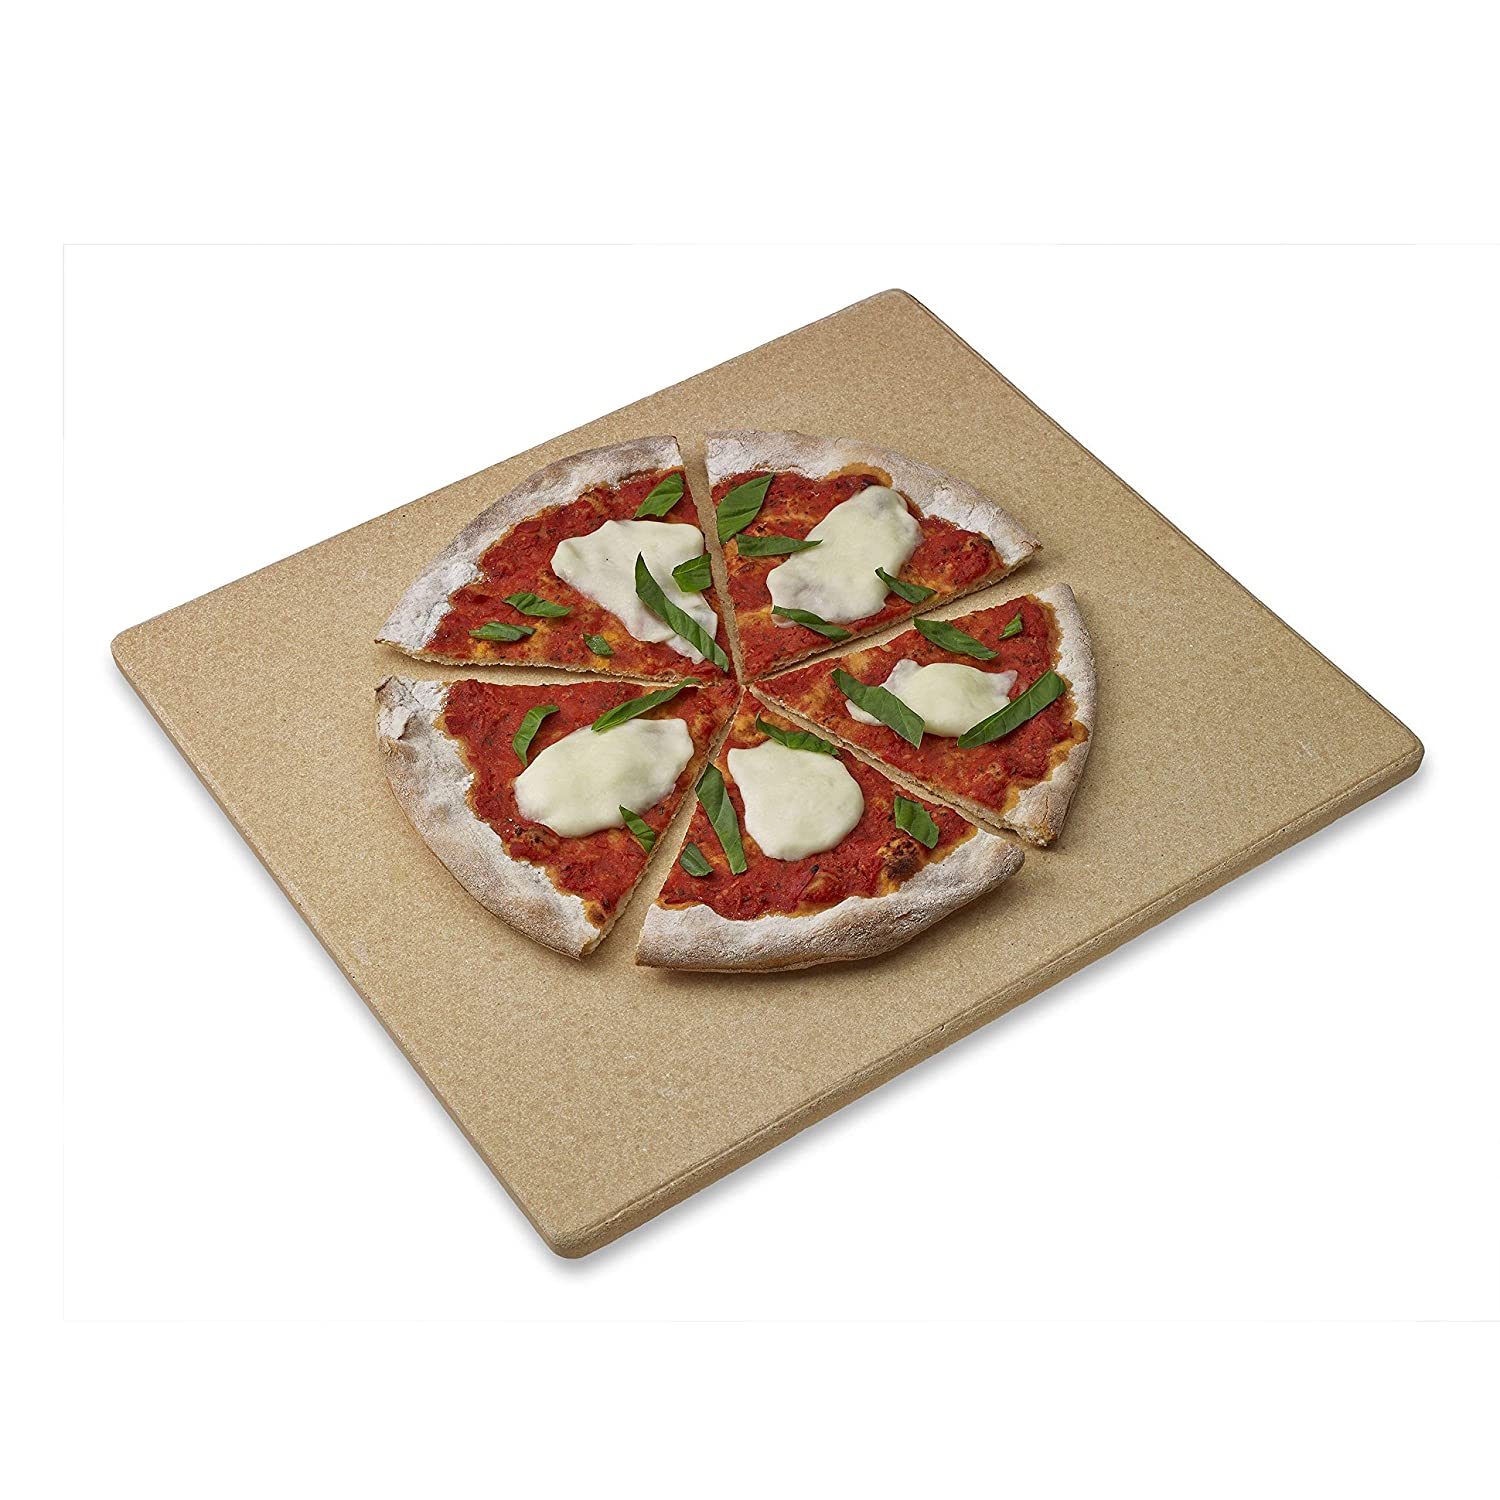 Old Stone Oven Rectangular Pizza Stone (Certified Refurbished)